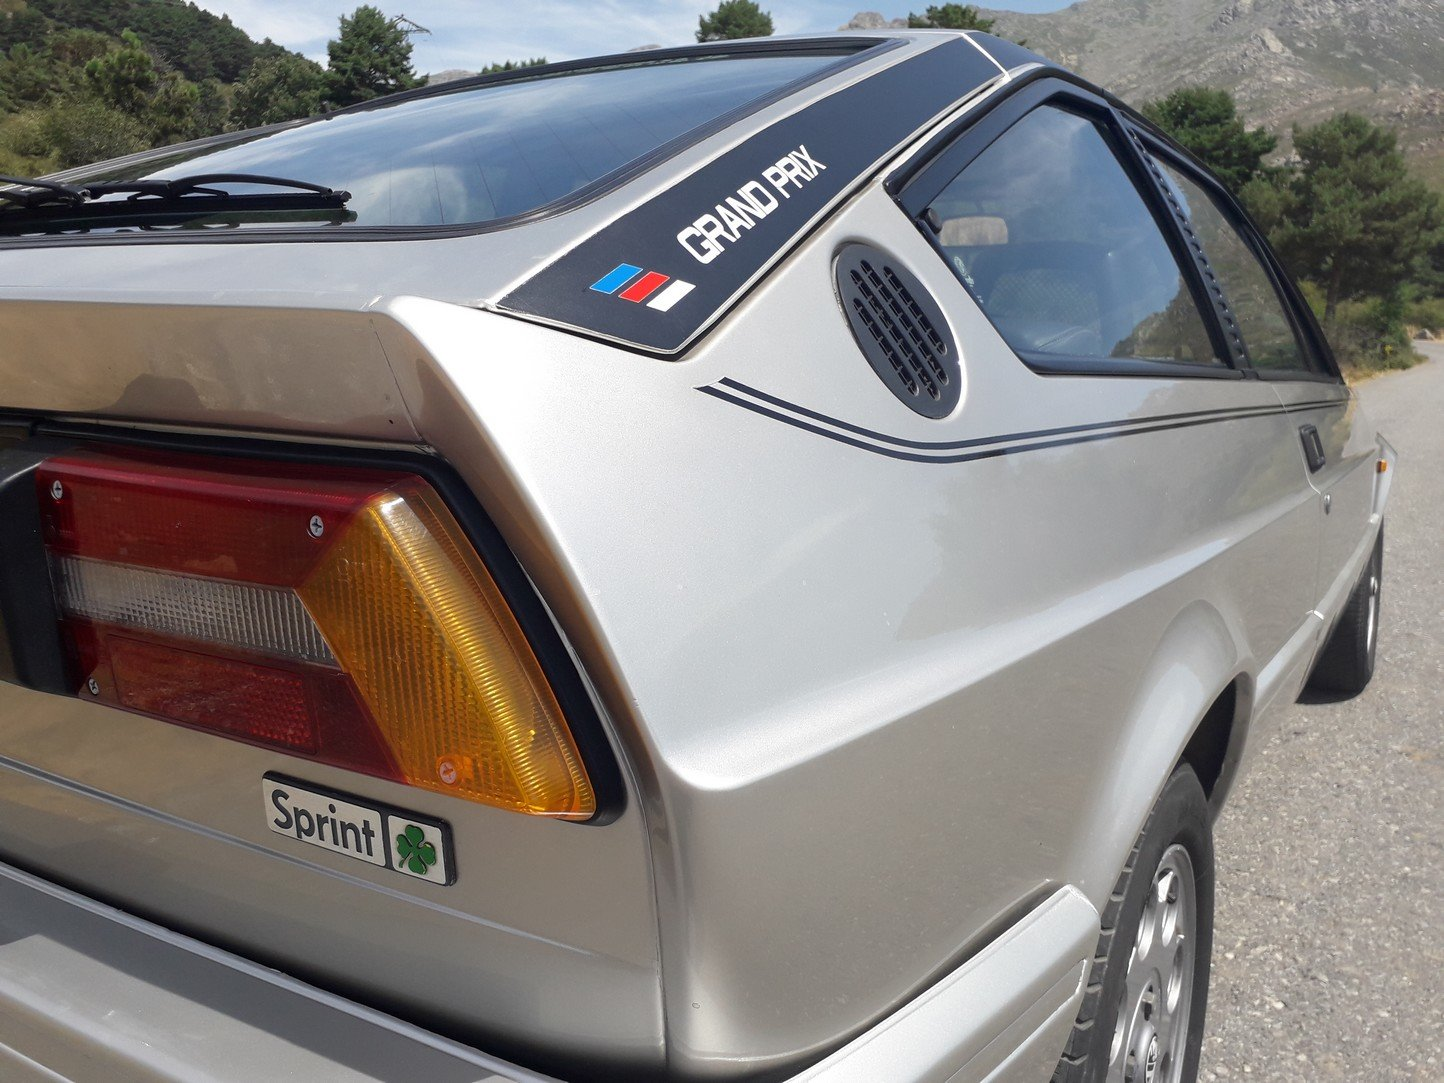 1987 SPRINT GRAND PRIX Limited edition Rare 1 owner  For Sale (picture 2 of 6)